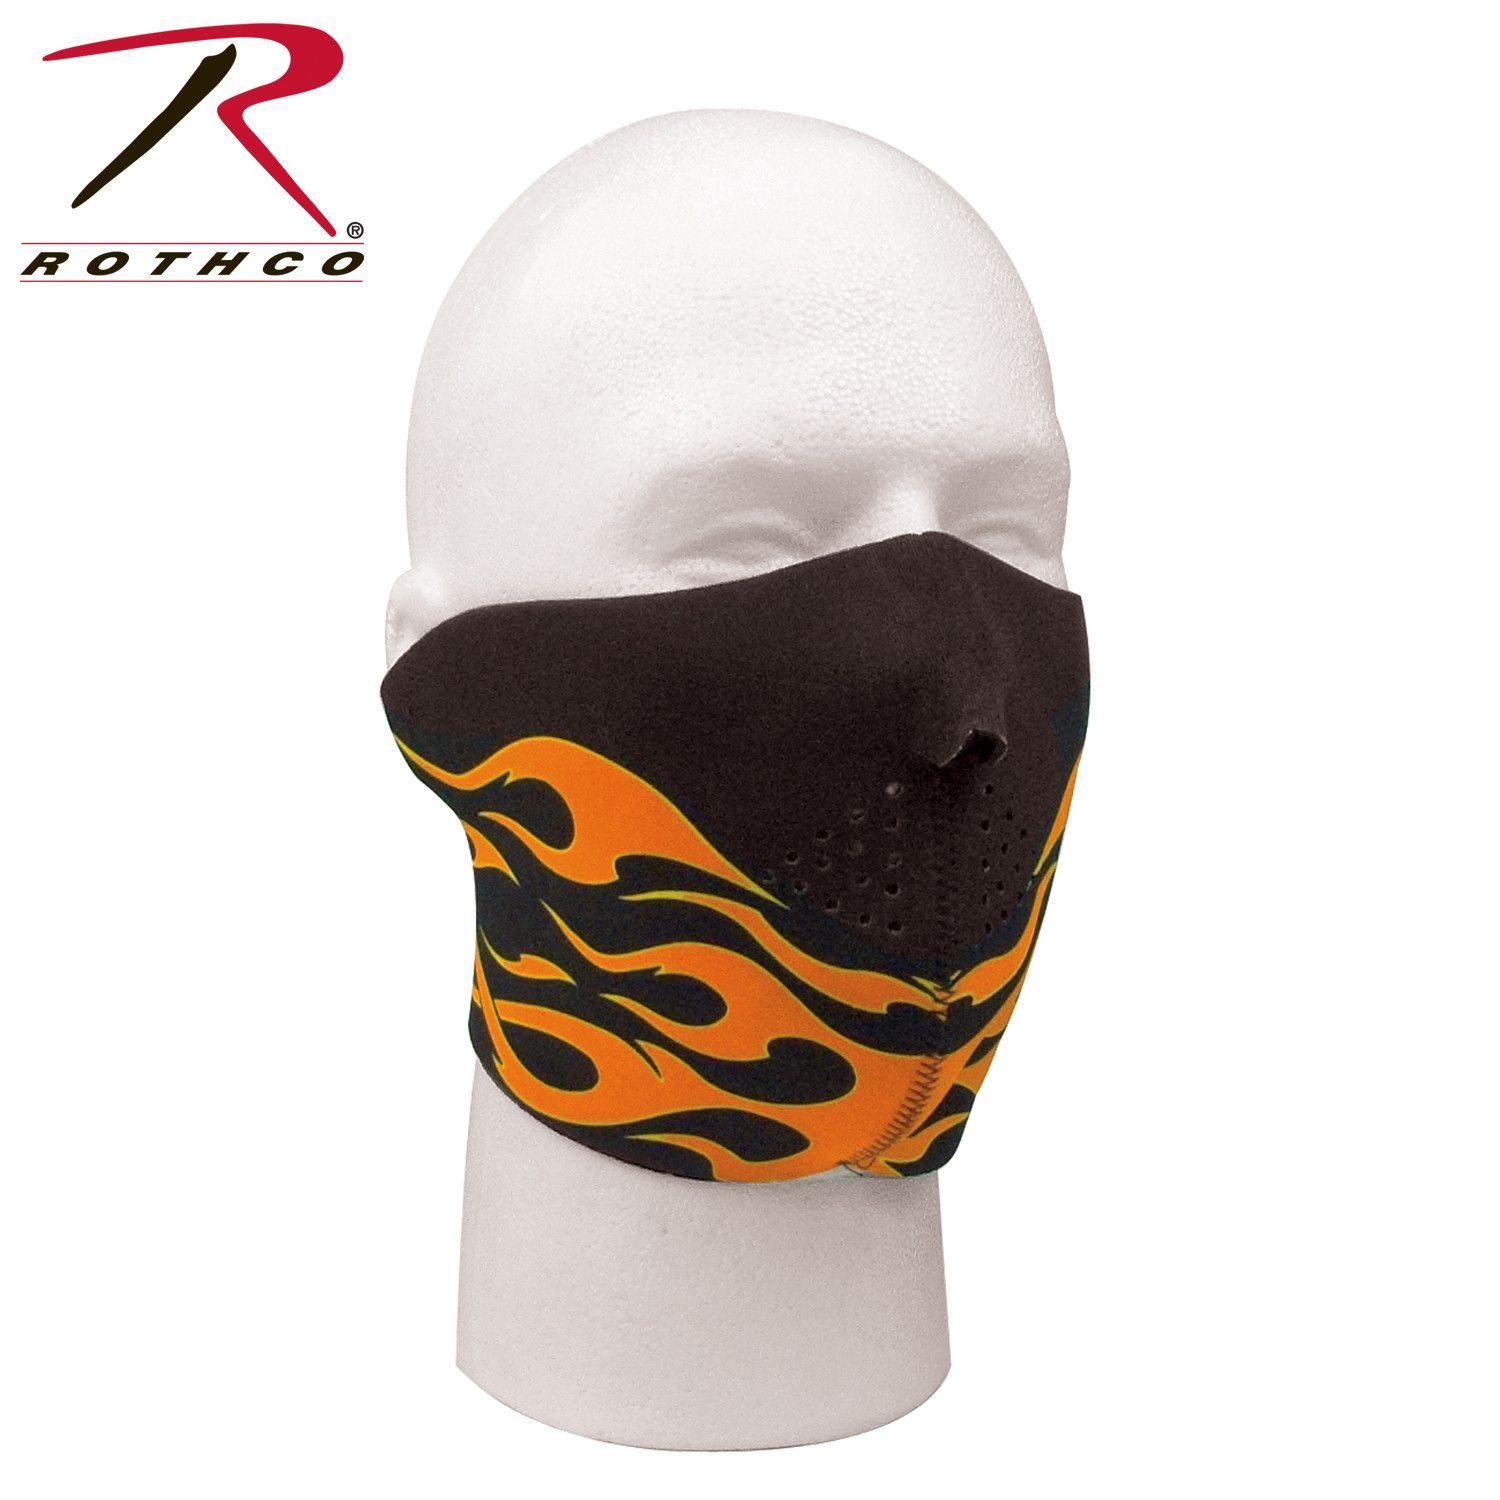 00f53 88901 head mask for winter armyuniverse low priced - newsbdonline.com 06bf33f906d